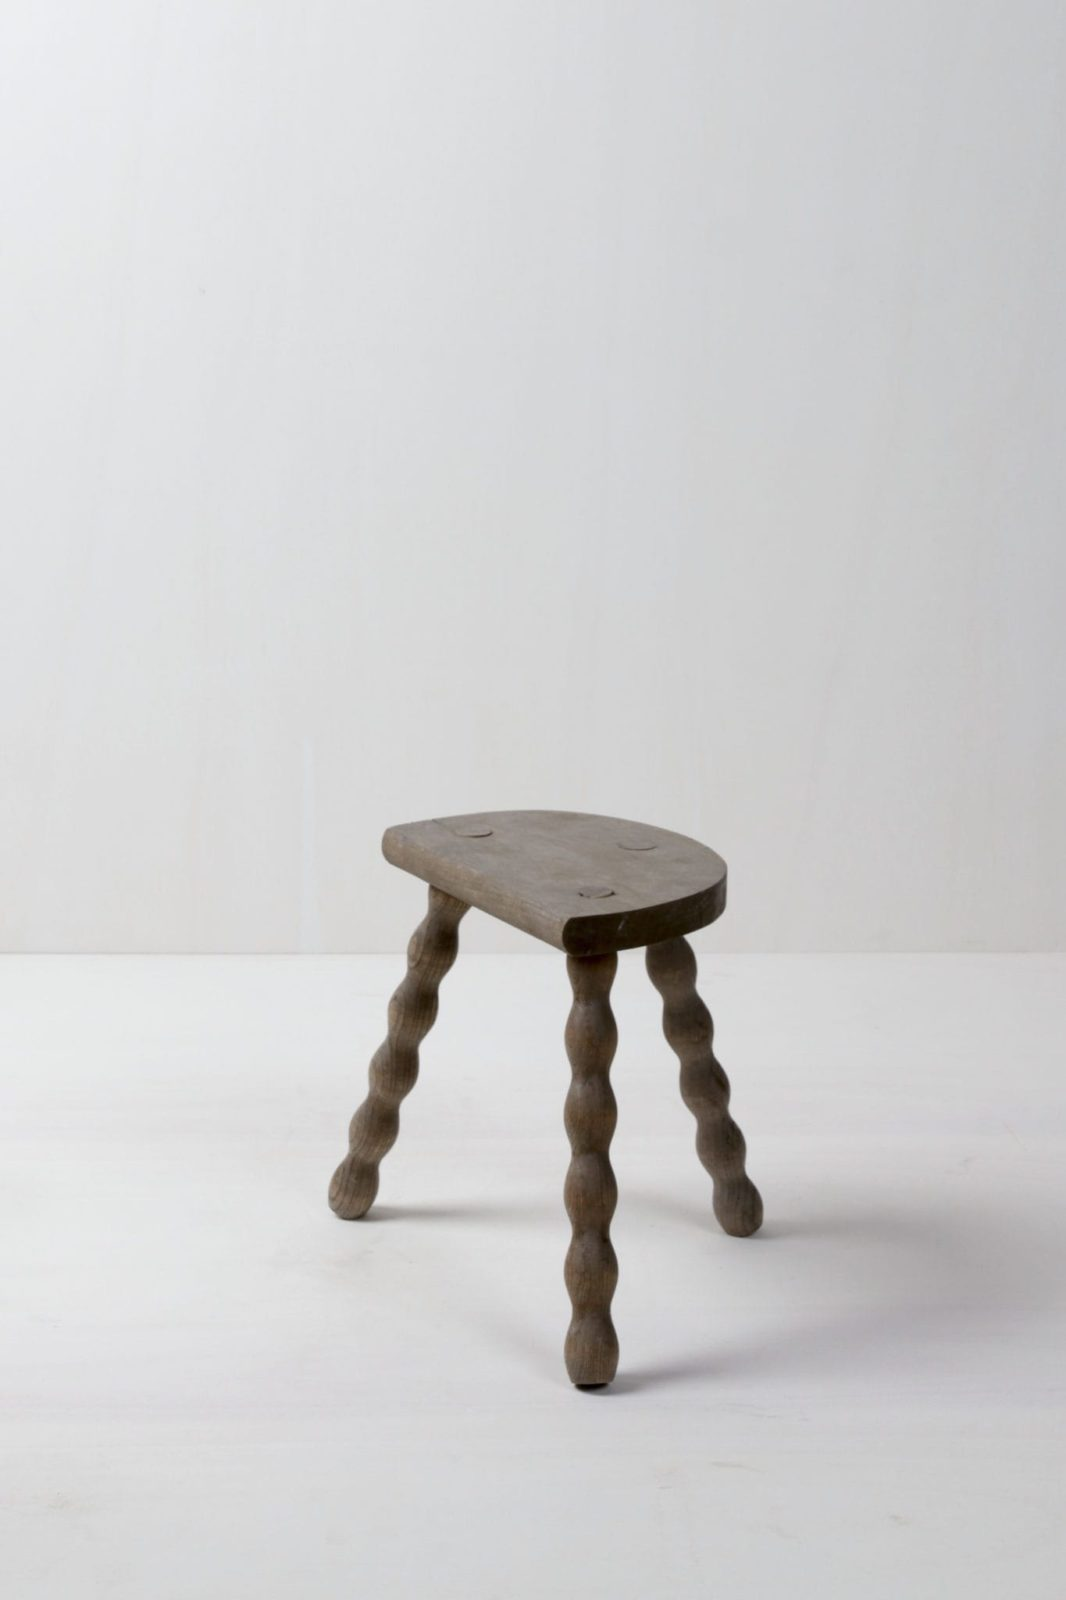 Side Table Pepe | Beautiful wooden side table with semicircular top. Versatile decoration element. Size S.Also available in other sizes - see side table Cirilo, side table Pacho. | gotvintage Rental & Event Design